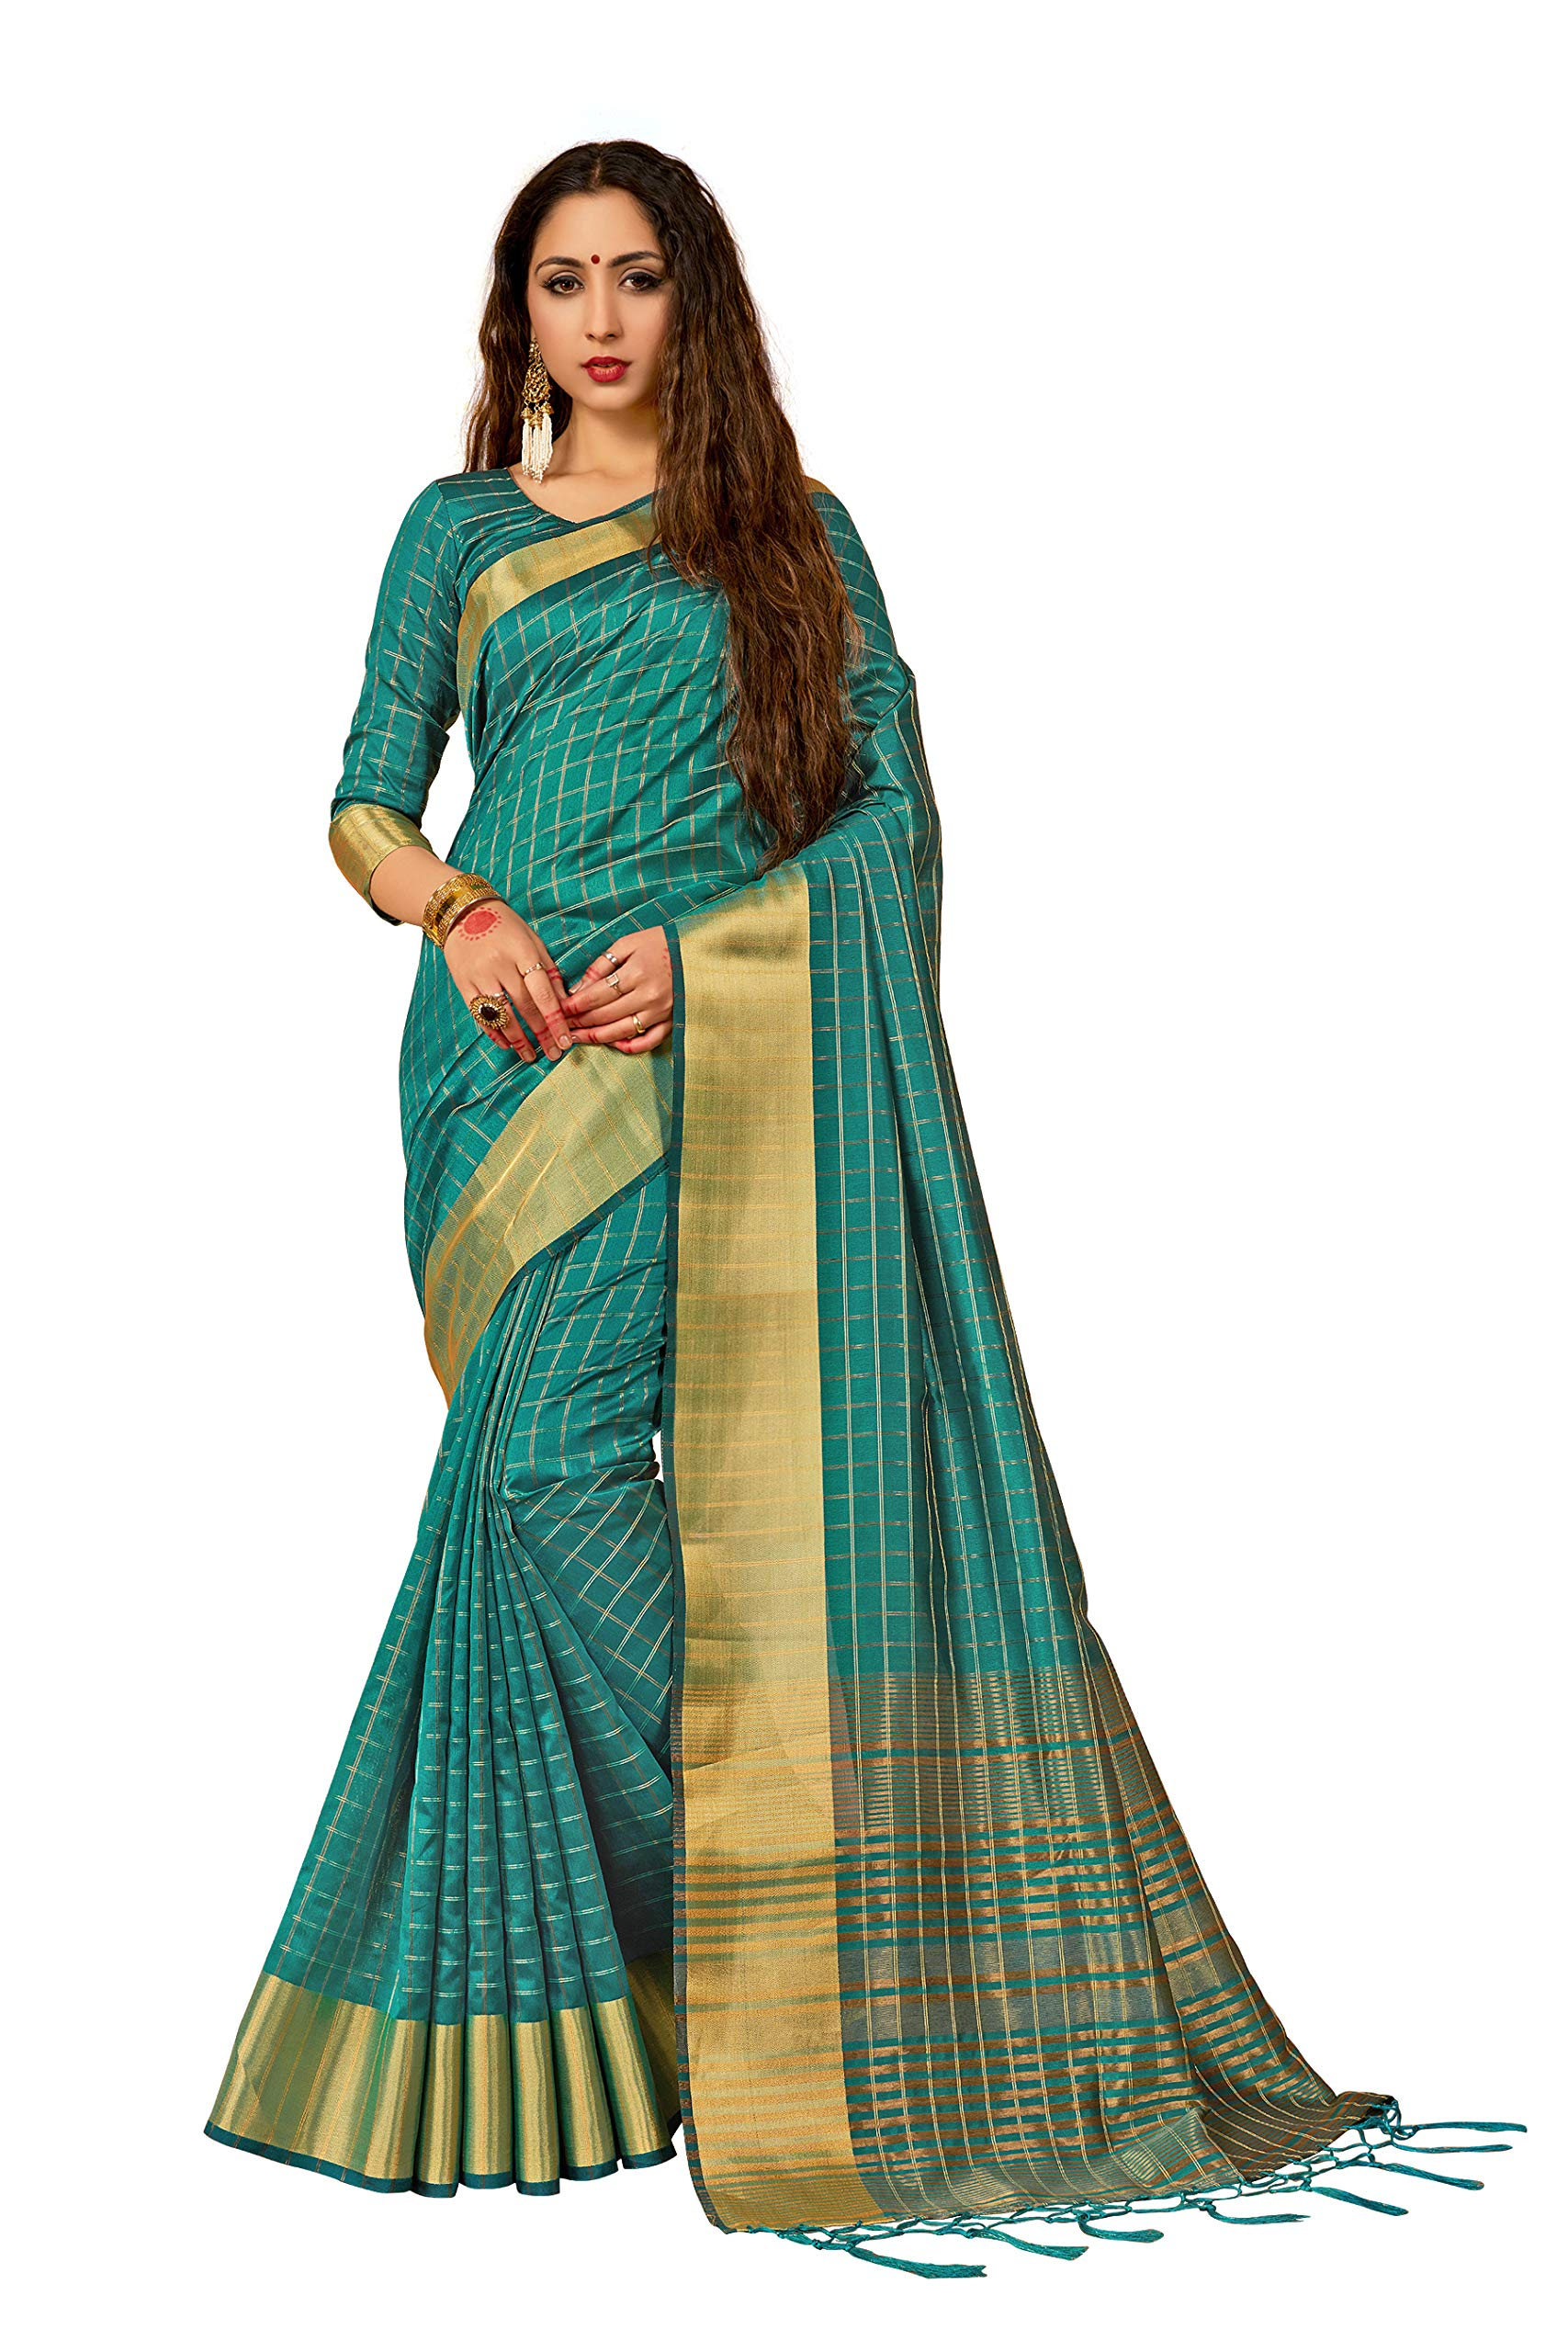 Sarees for Women Art Silk Woven Saree l Indian Ethnic Wedding Gift Sari with Unstitched Blouse Teal